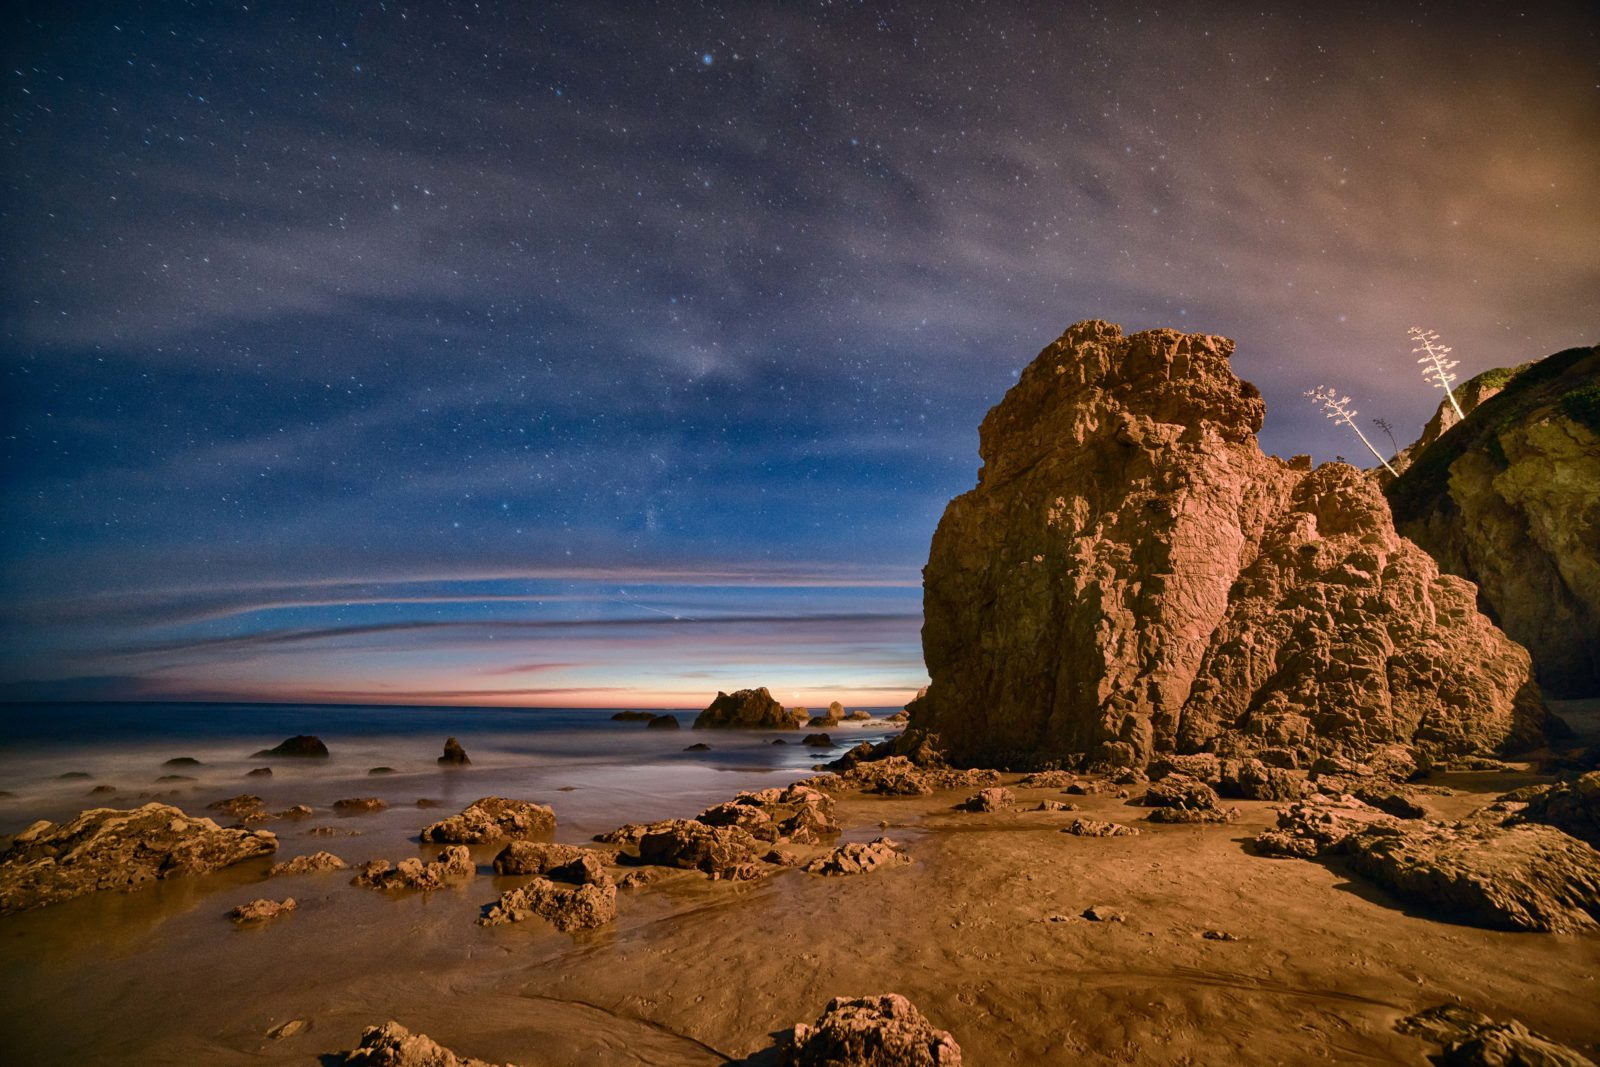 Twilight at El Matador Beach